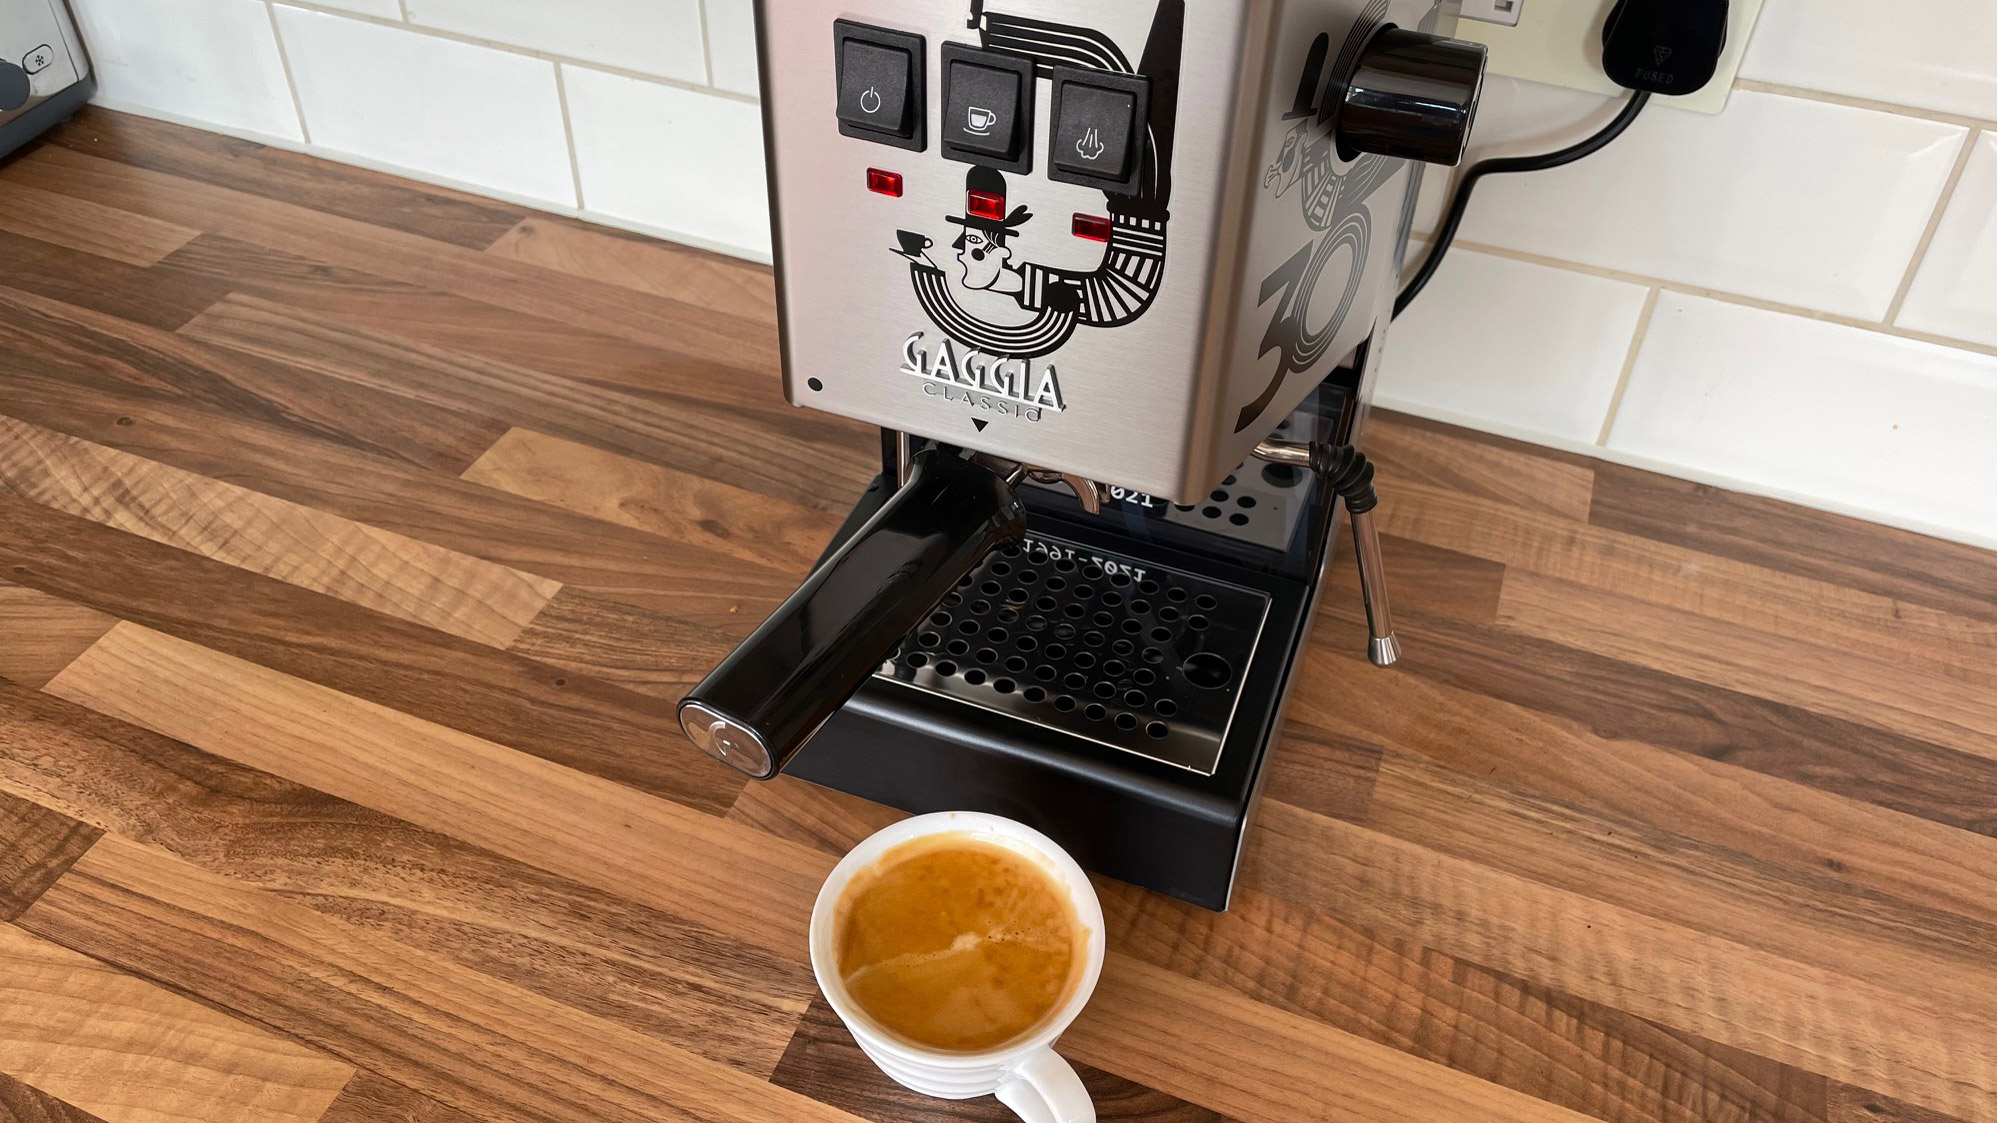 The Gaggia Classic on a kitchen countertop having just brewed an espresso